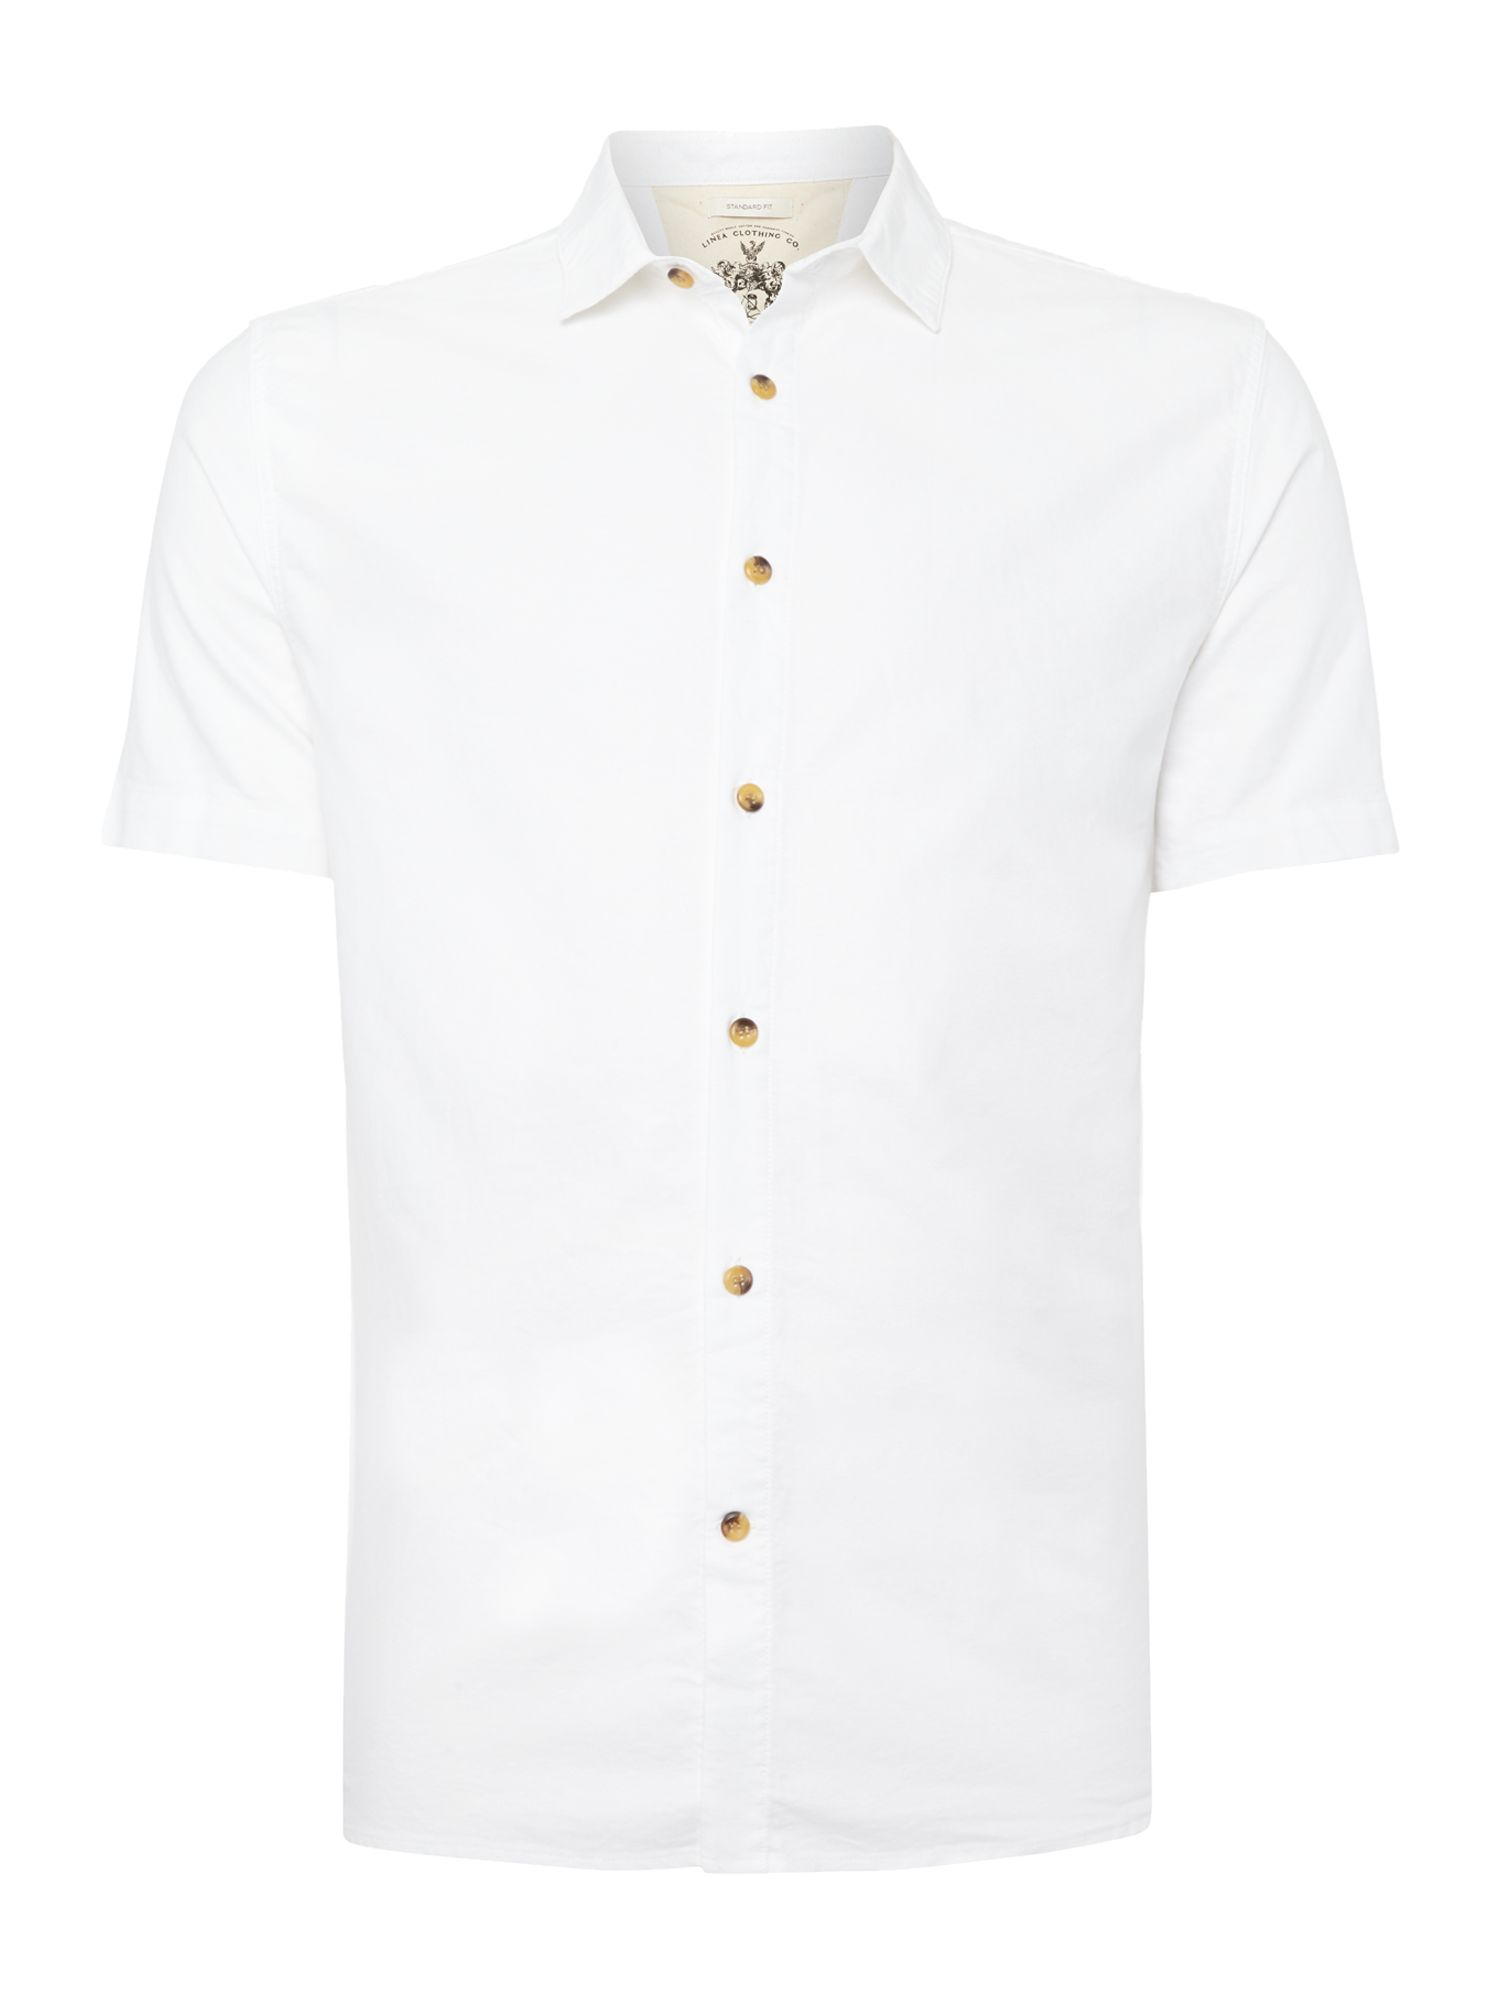 harold plain short sleeved oxford shirt